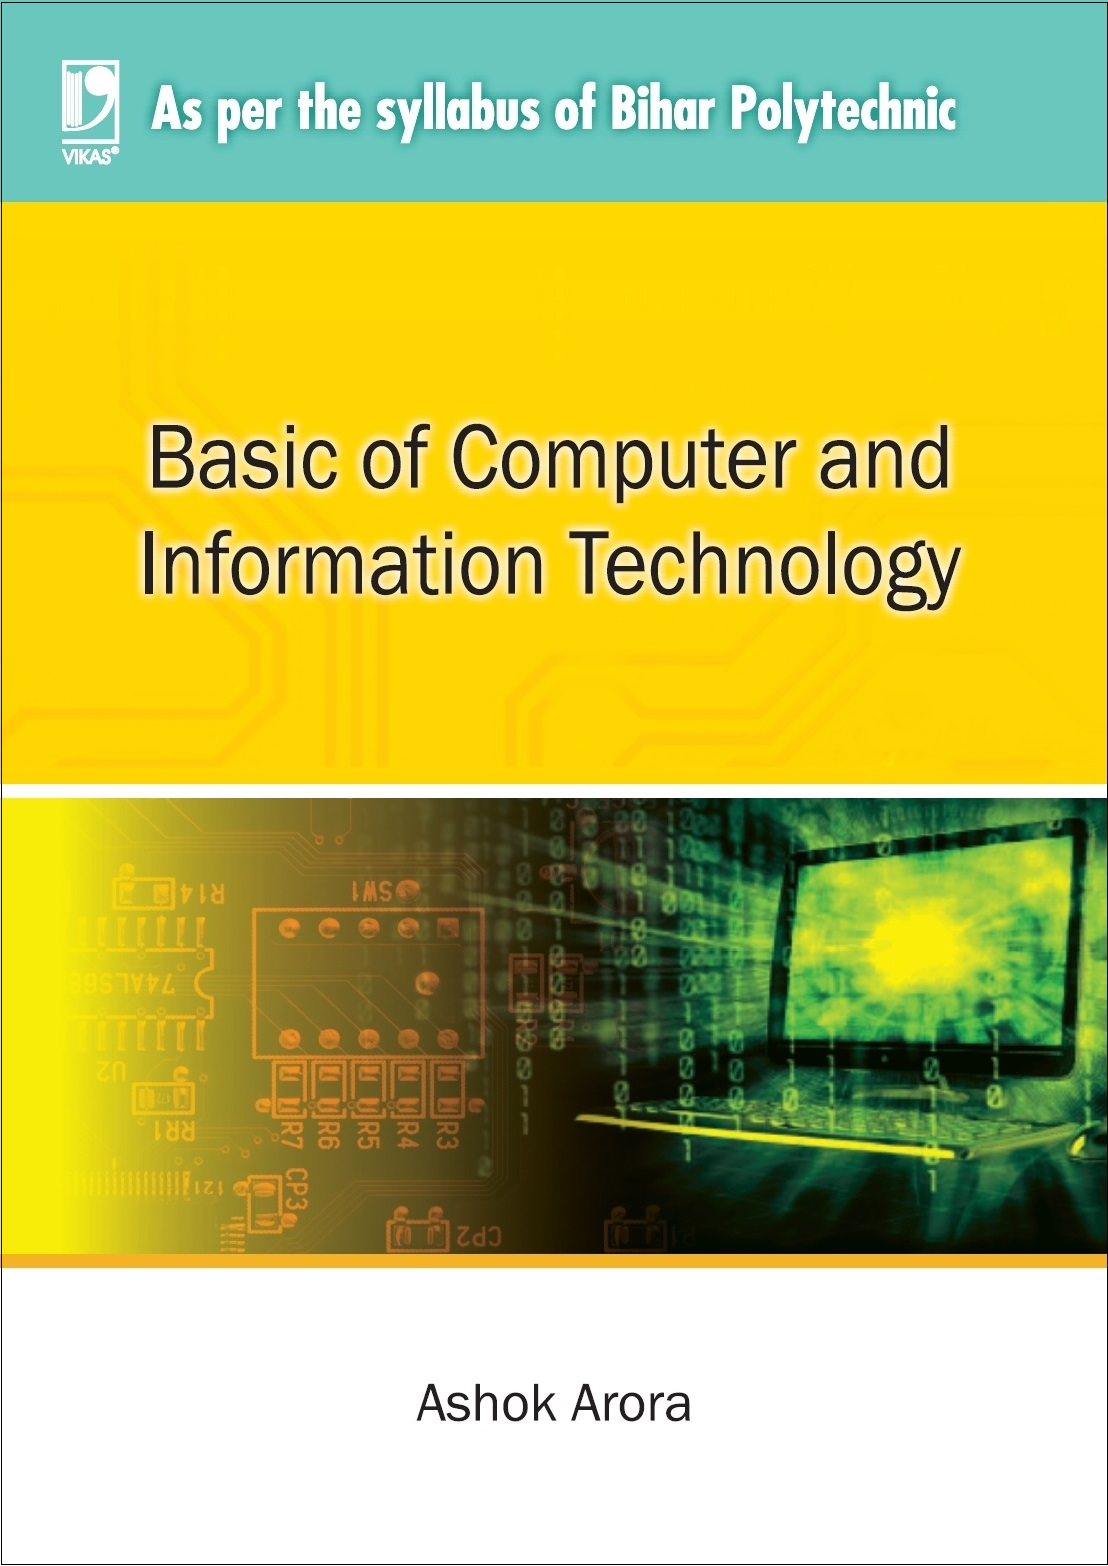 BASIC OF COMPUTER AND INFORMATION TECHNOLOGY: (FOR BIHAR POLYTECHNIC) by  Ashok Arora